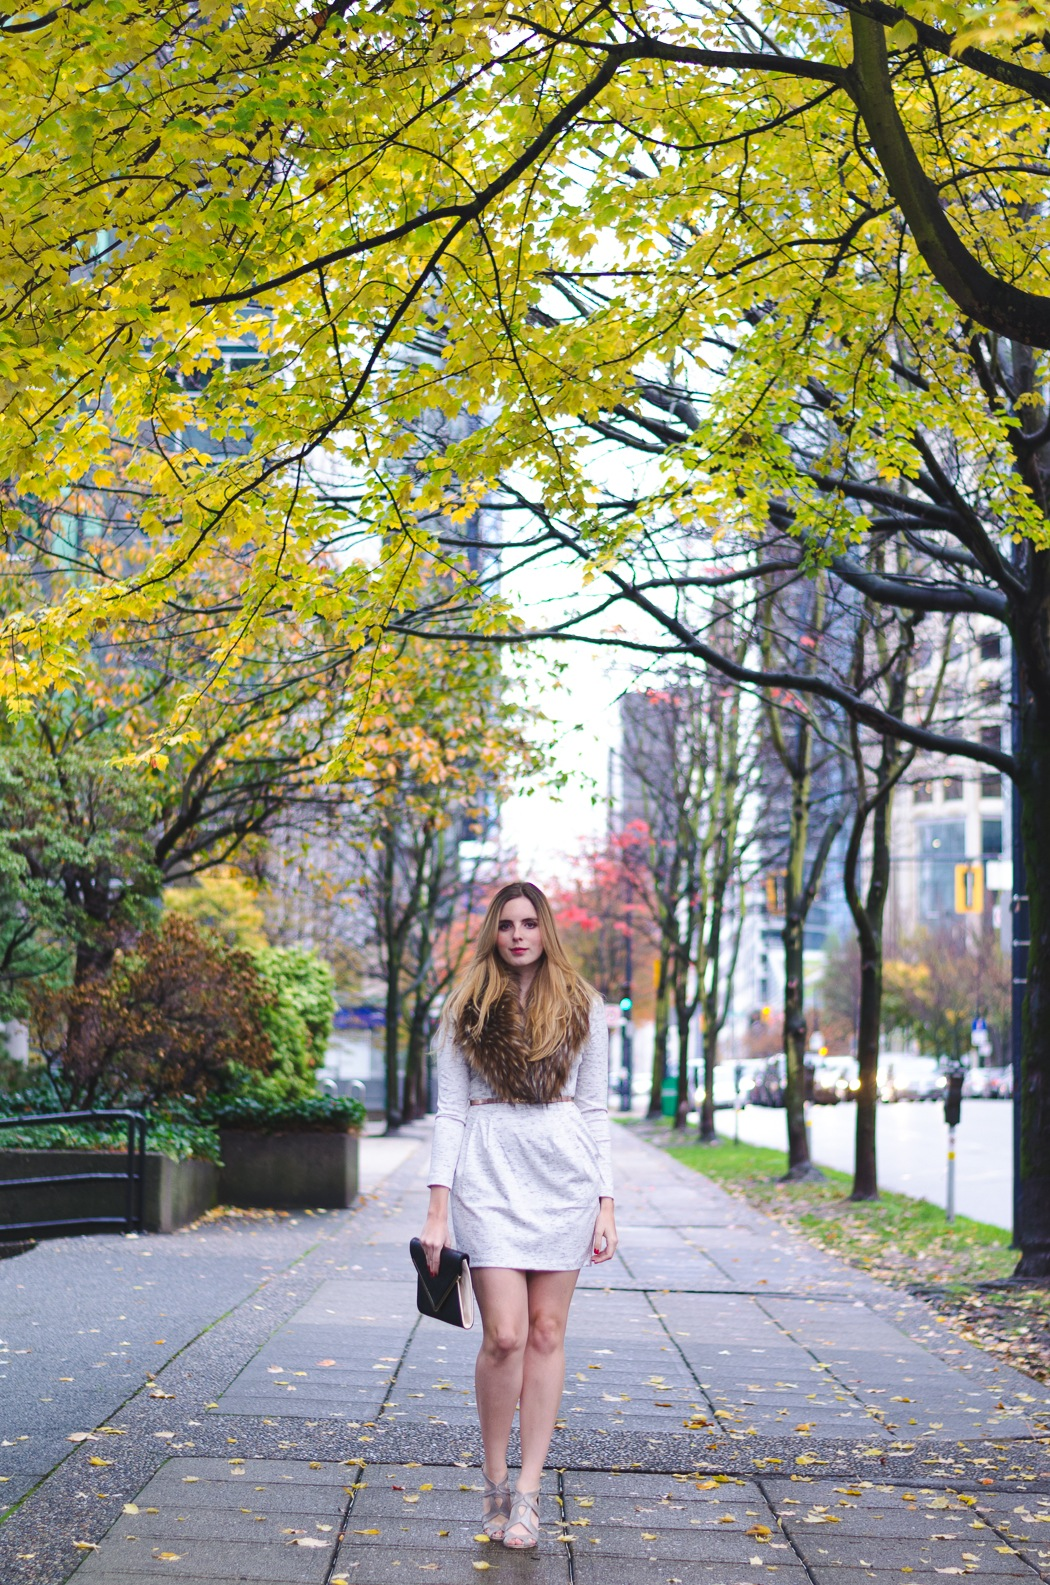 the urban umbrella style blog, vancouver style blog, vancouver style blogger, vancouver style bloggers, vancouver fashion blog, vancouver lifestyle blog, vancouver health blog, vancouver fitness blog, vancouver travel blog, canadian fashion blog, canadian style blog, canadian lifestyle blog, canadian health blog, canadian fitness blog, canadian travel blog, west coast style, bree aylwin, how to style a faux fur collar, what to wear to a holiday party, how to look stylish in winter, stylish datenight outfit, how to wear a long sleeve dress, best travel blogs, top vancouver fashion bloggers, top fashion blogs, best style blogs 2015, popular fashion blogs, top style blogs, top lifestyle blogs, top fitness blogs, top health blogs, top travel blogs bundled up for fall, how to dress for vancouver fall, what to wear in. Living in Vancouver, feminine fall style, minimal outfit, west coast style, vancouver blogger